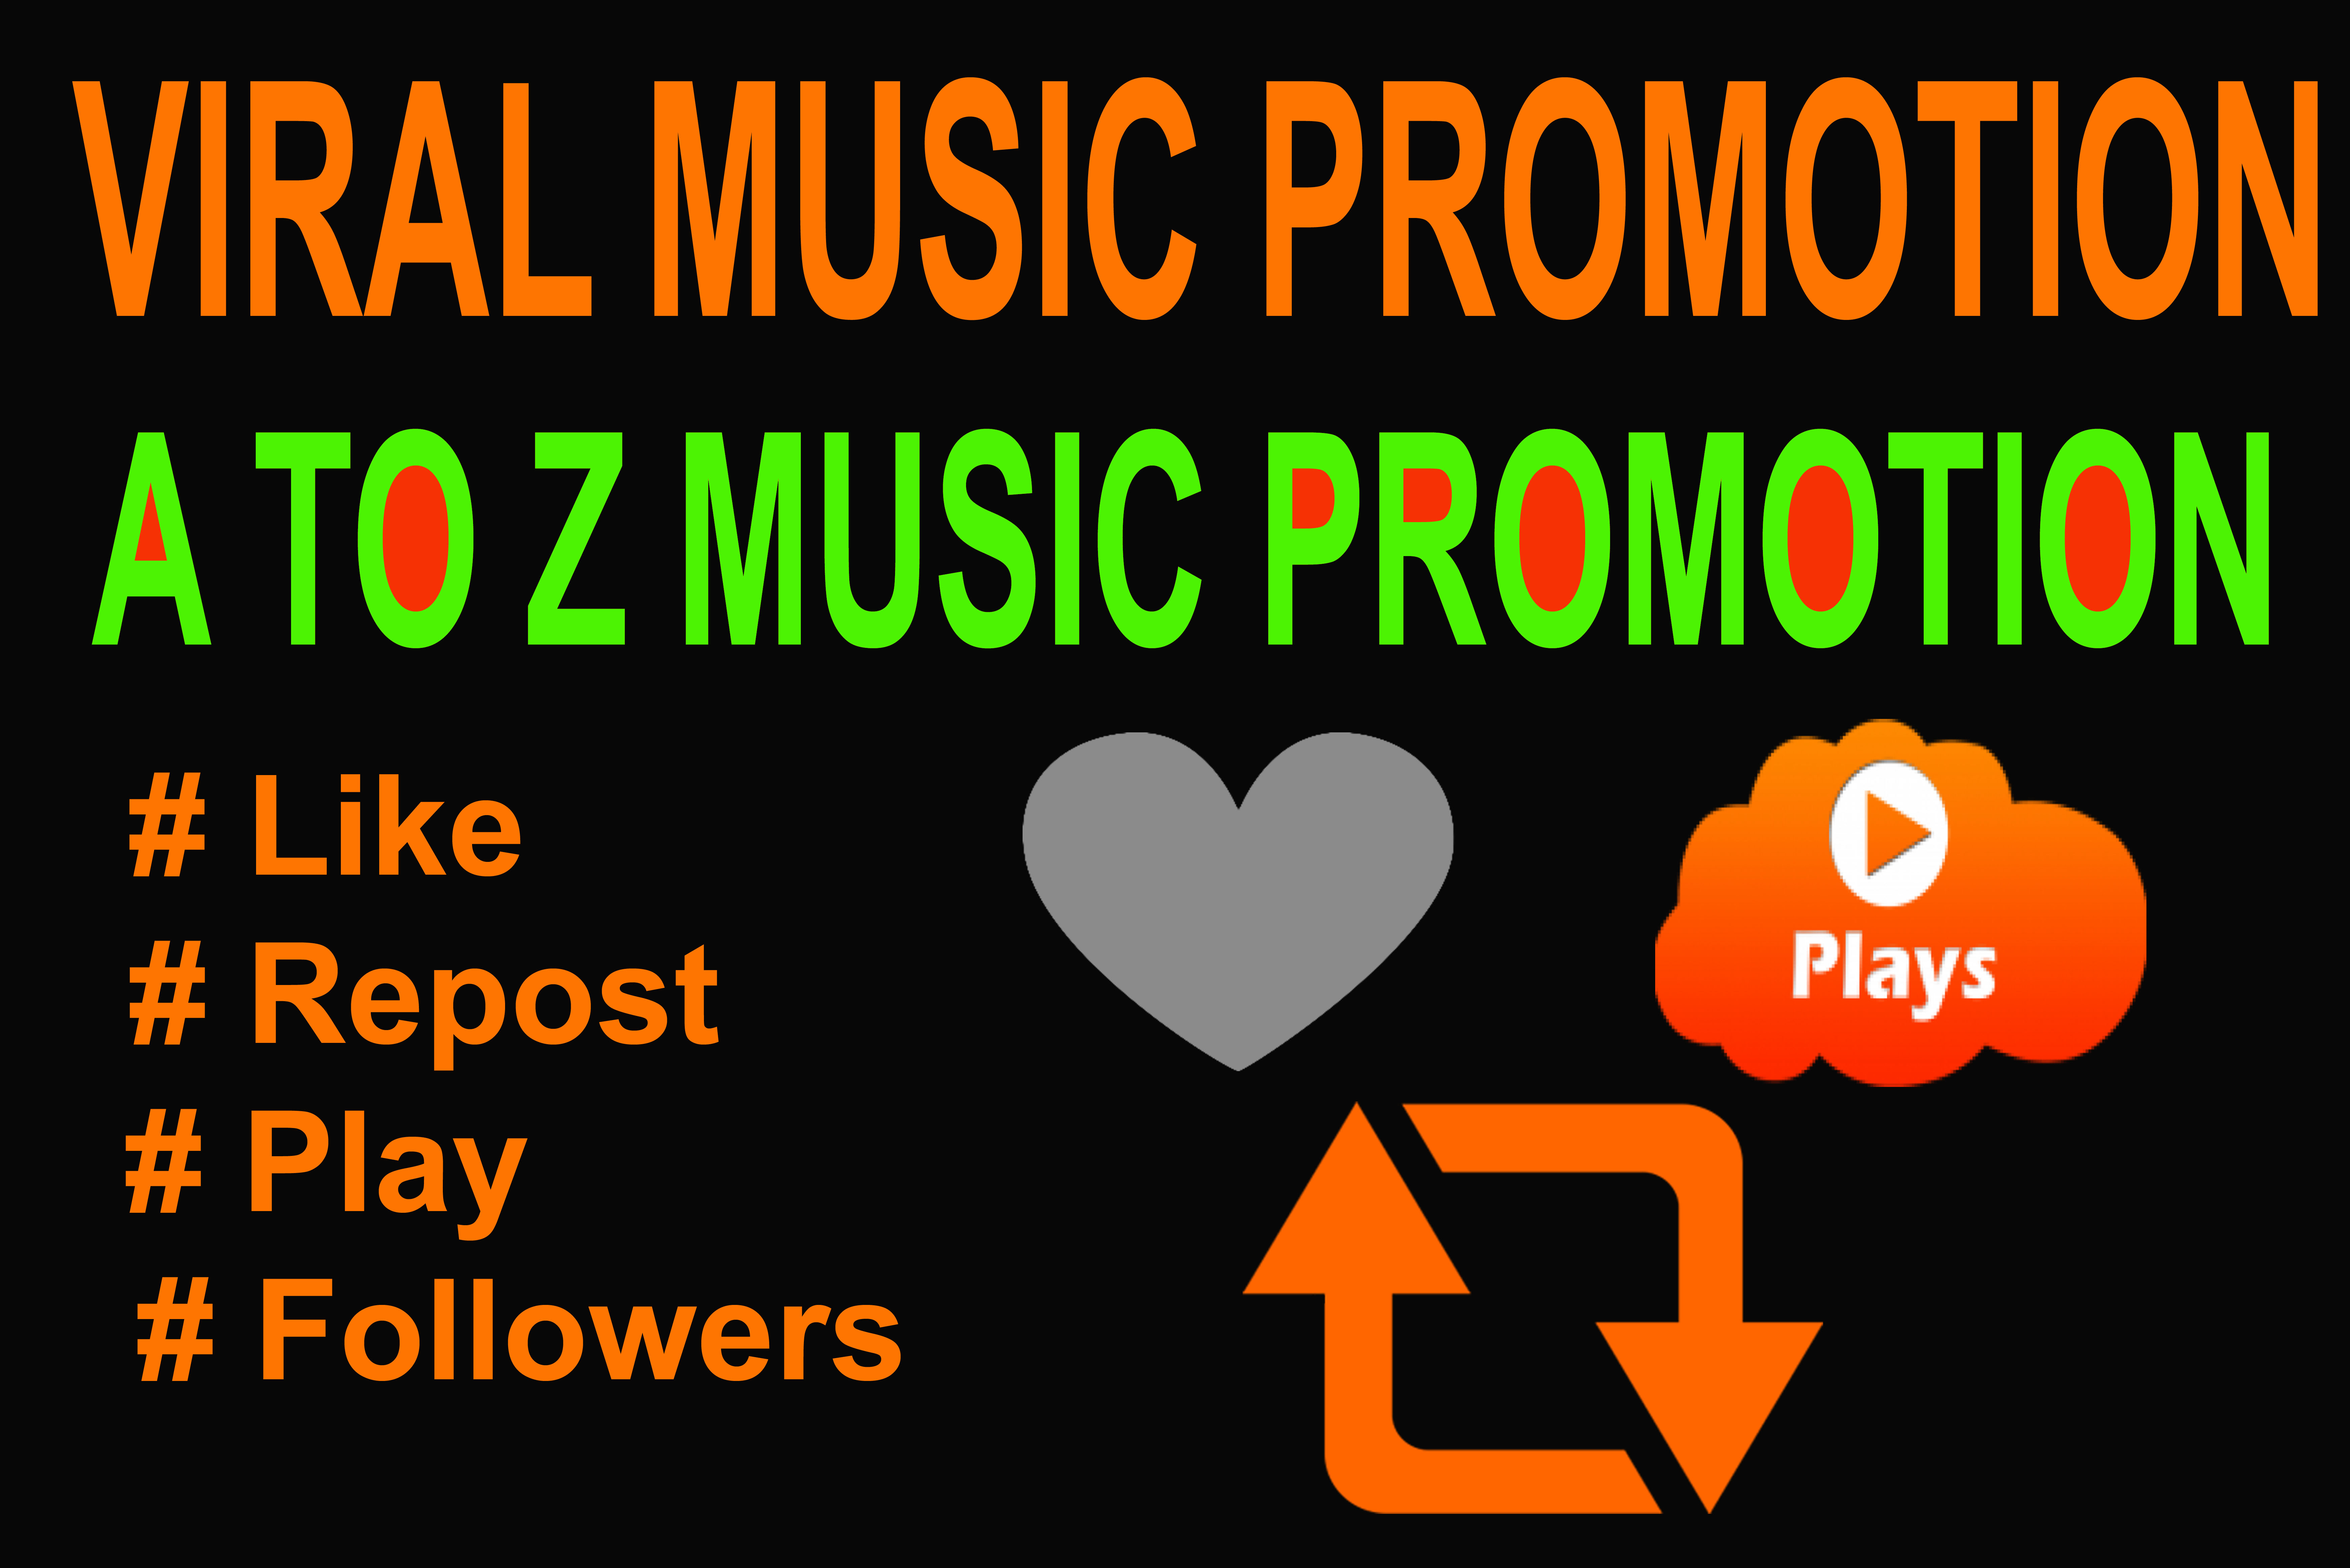 Music Promotion 55K Music Listening With More Promotion for $1